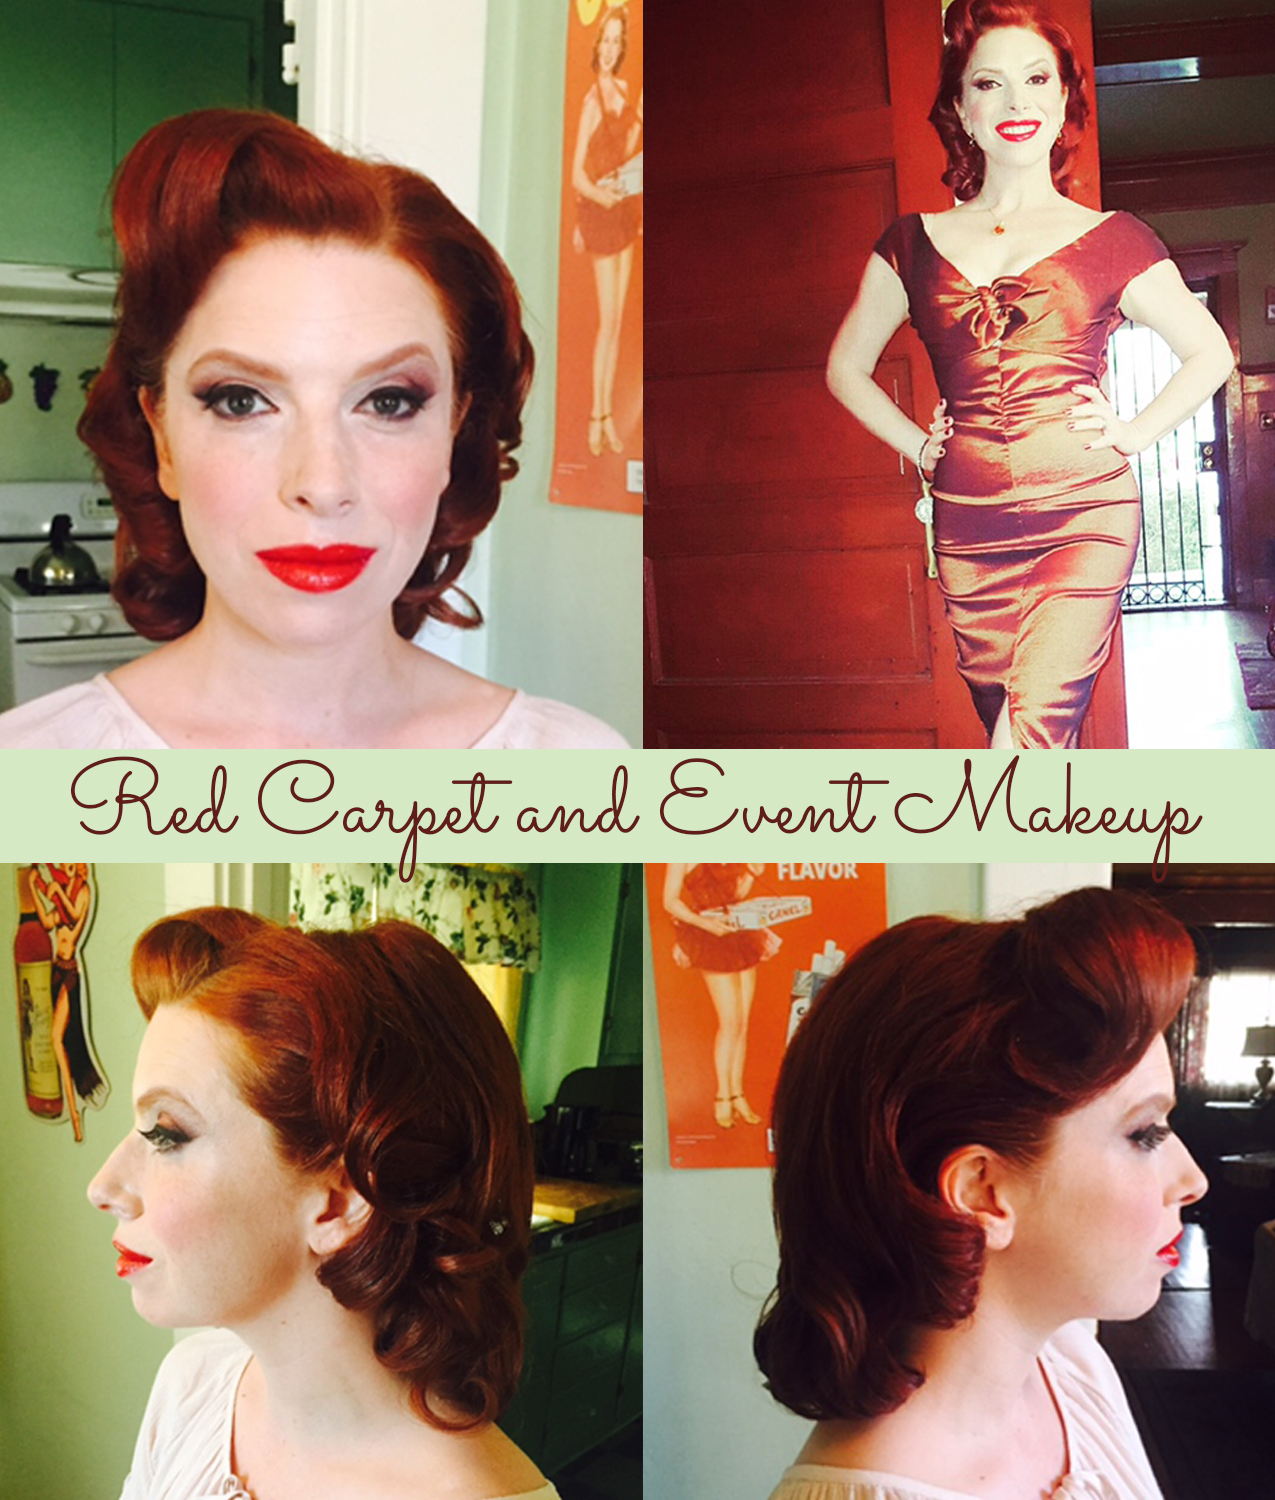 Vintage makeup and hair Los Angeles